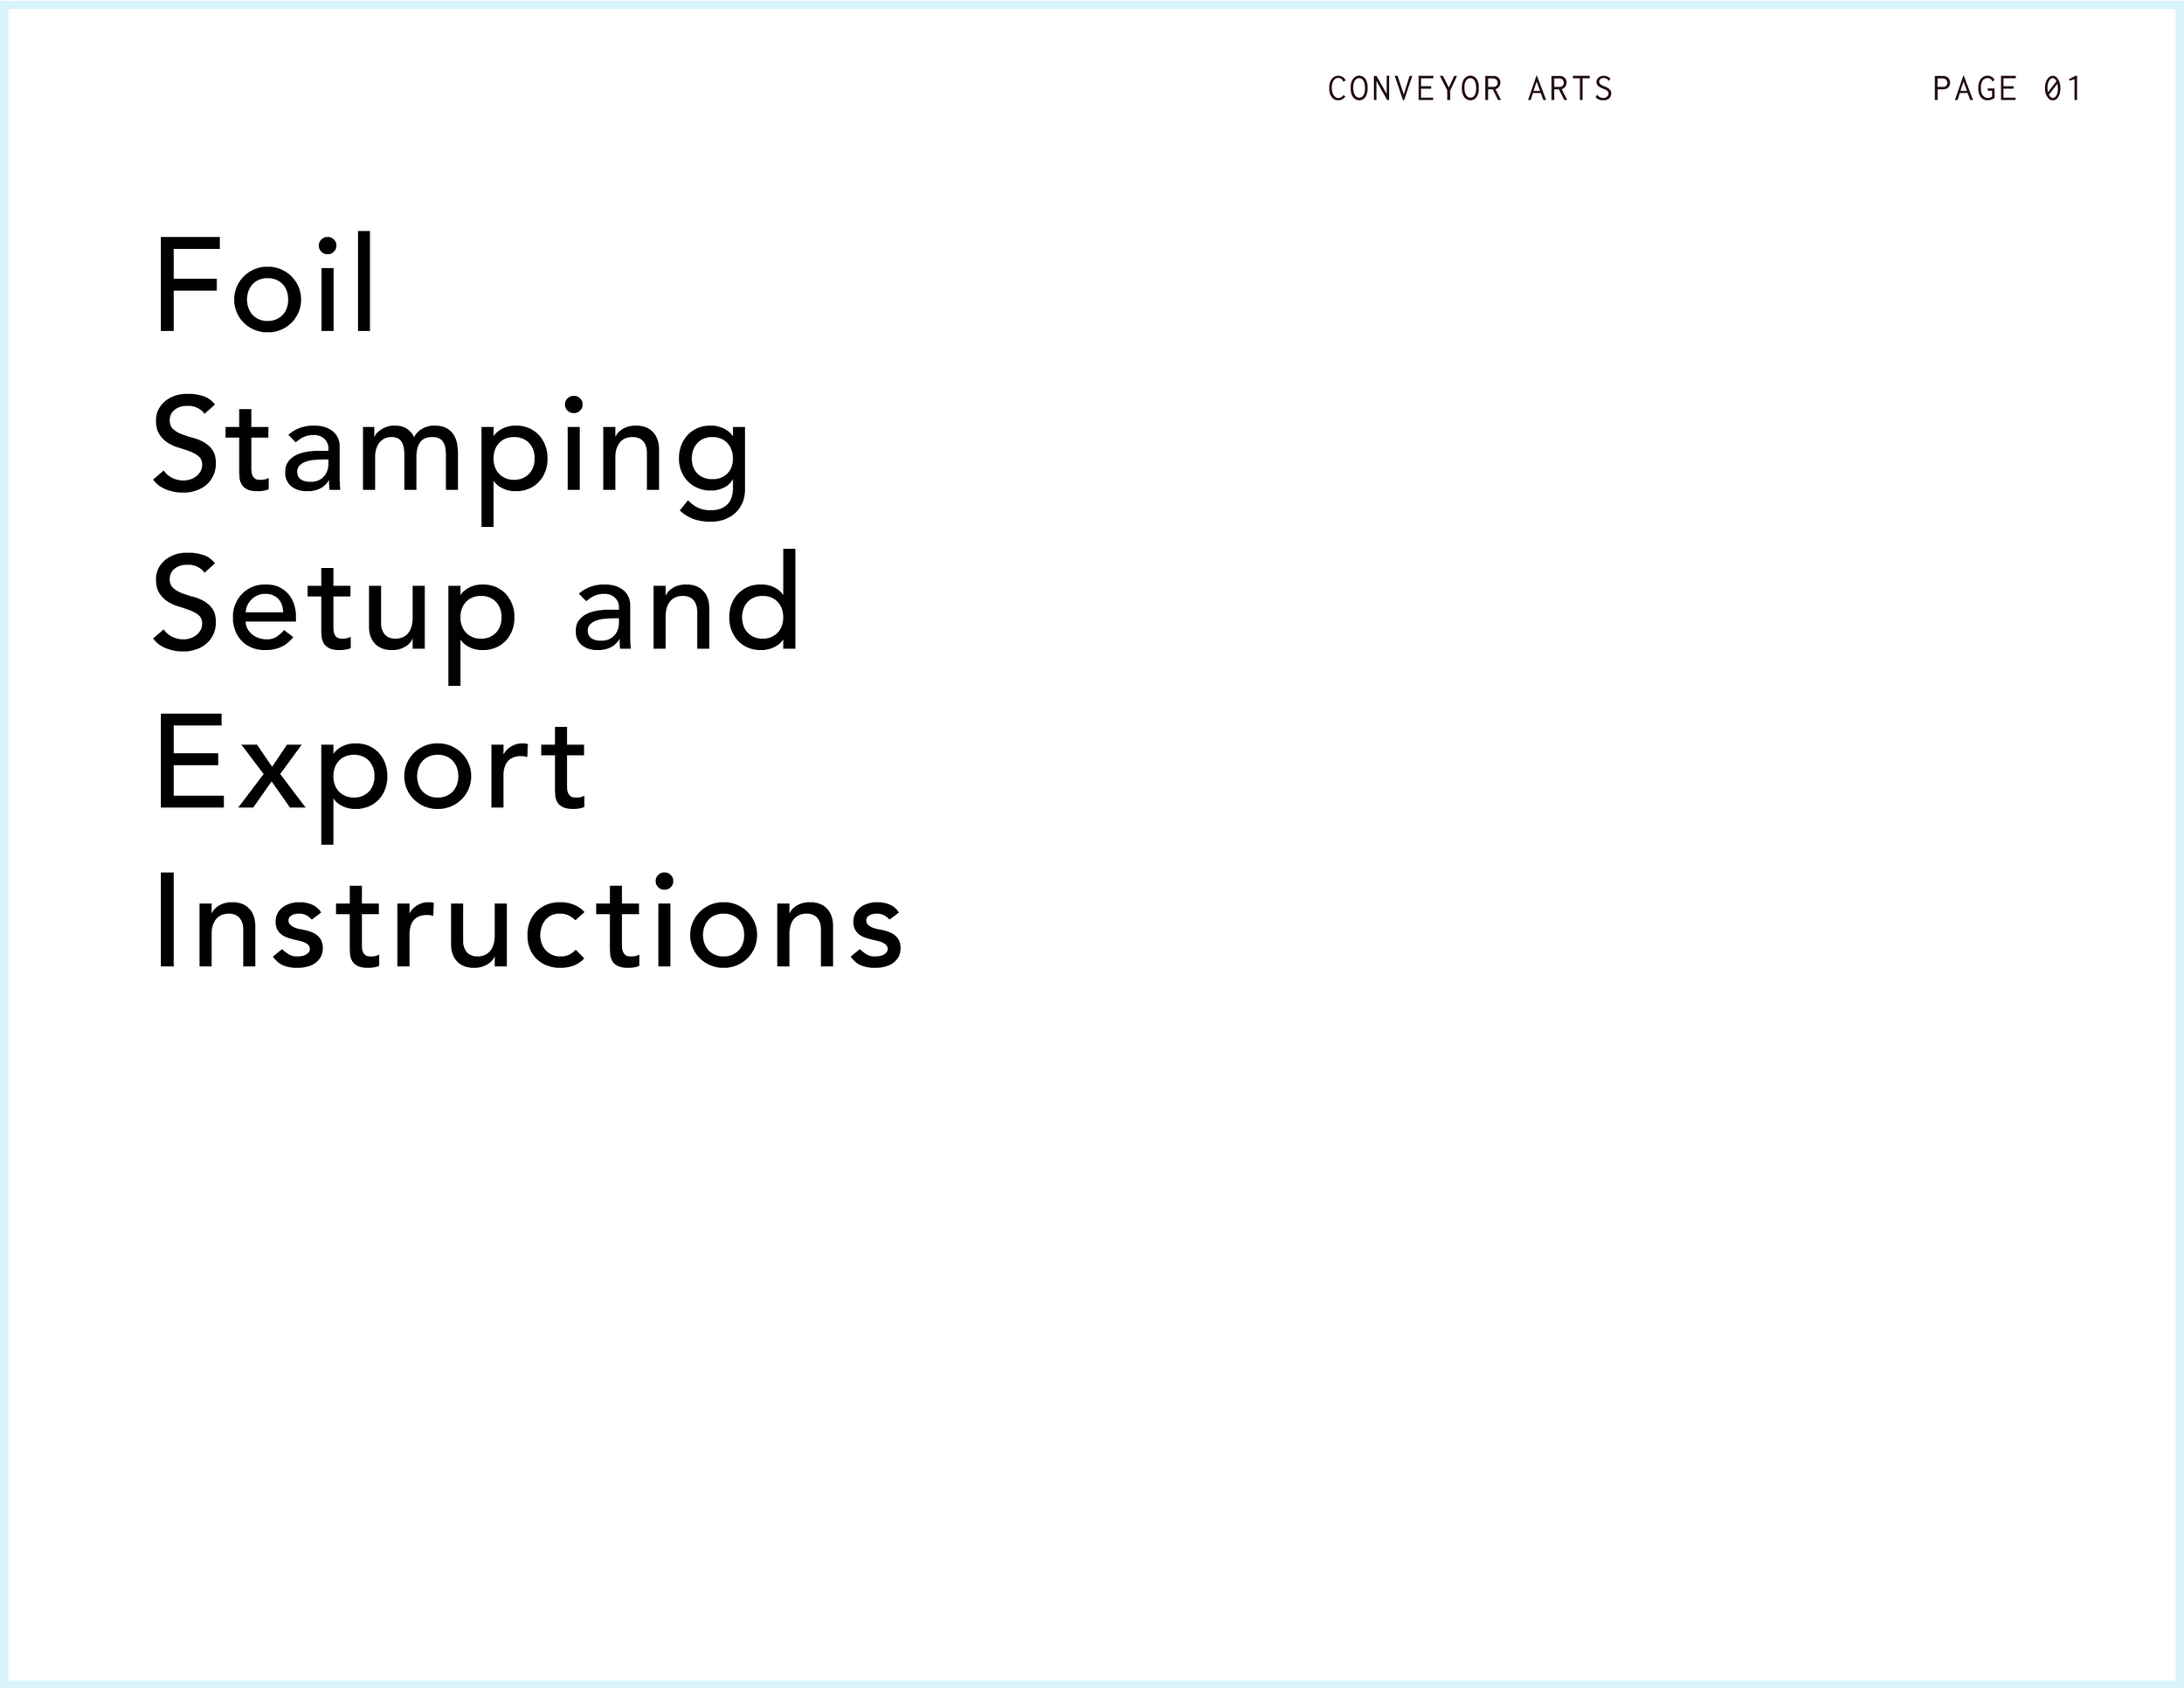 Conveyor Arts Stamping Setup_Instructions_01.jpg